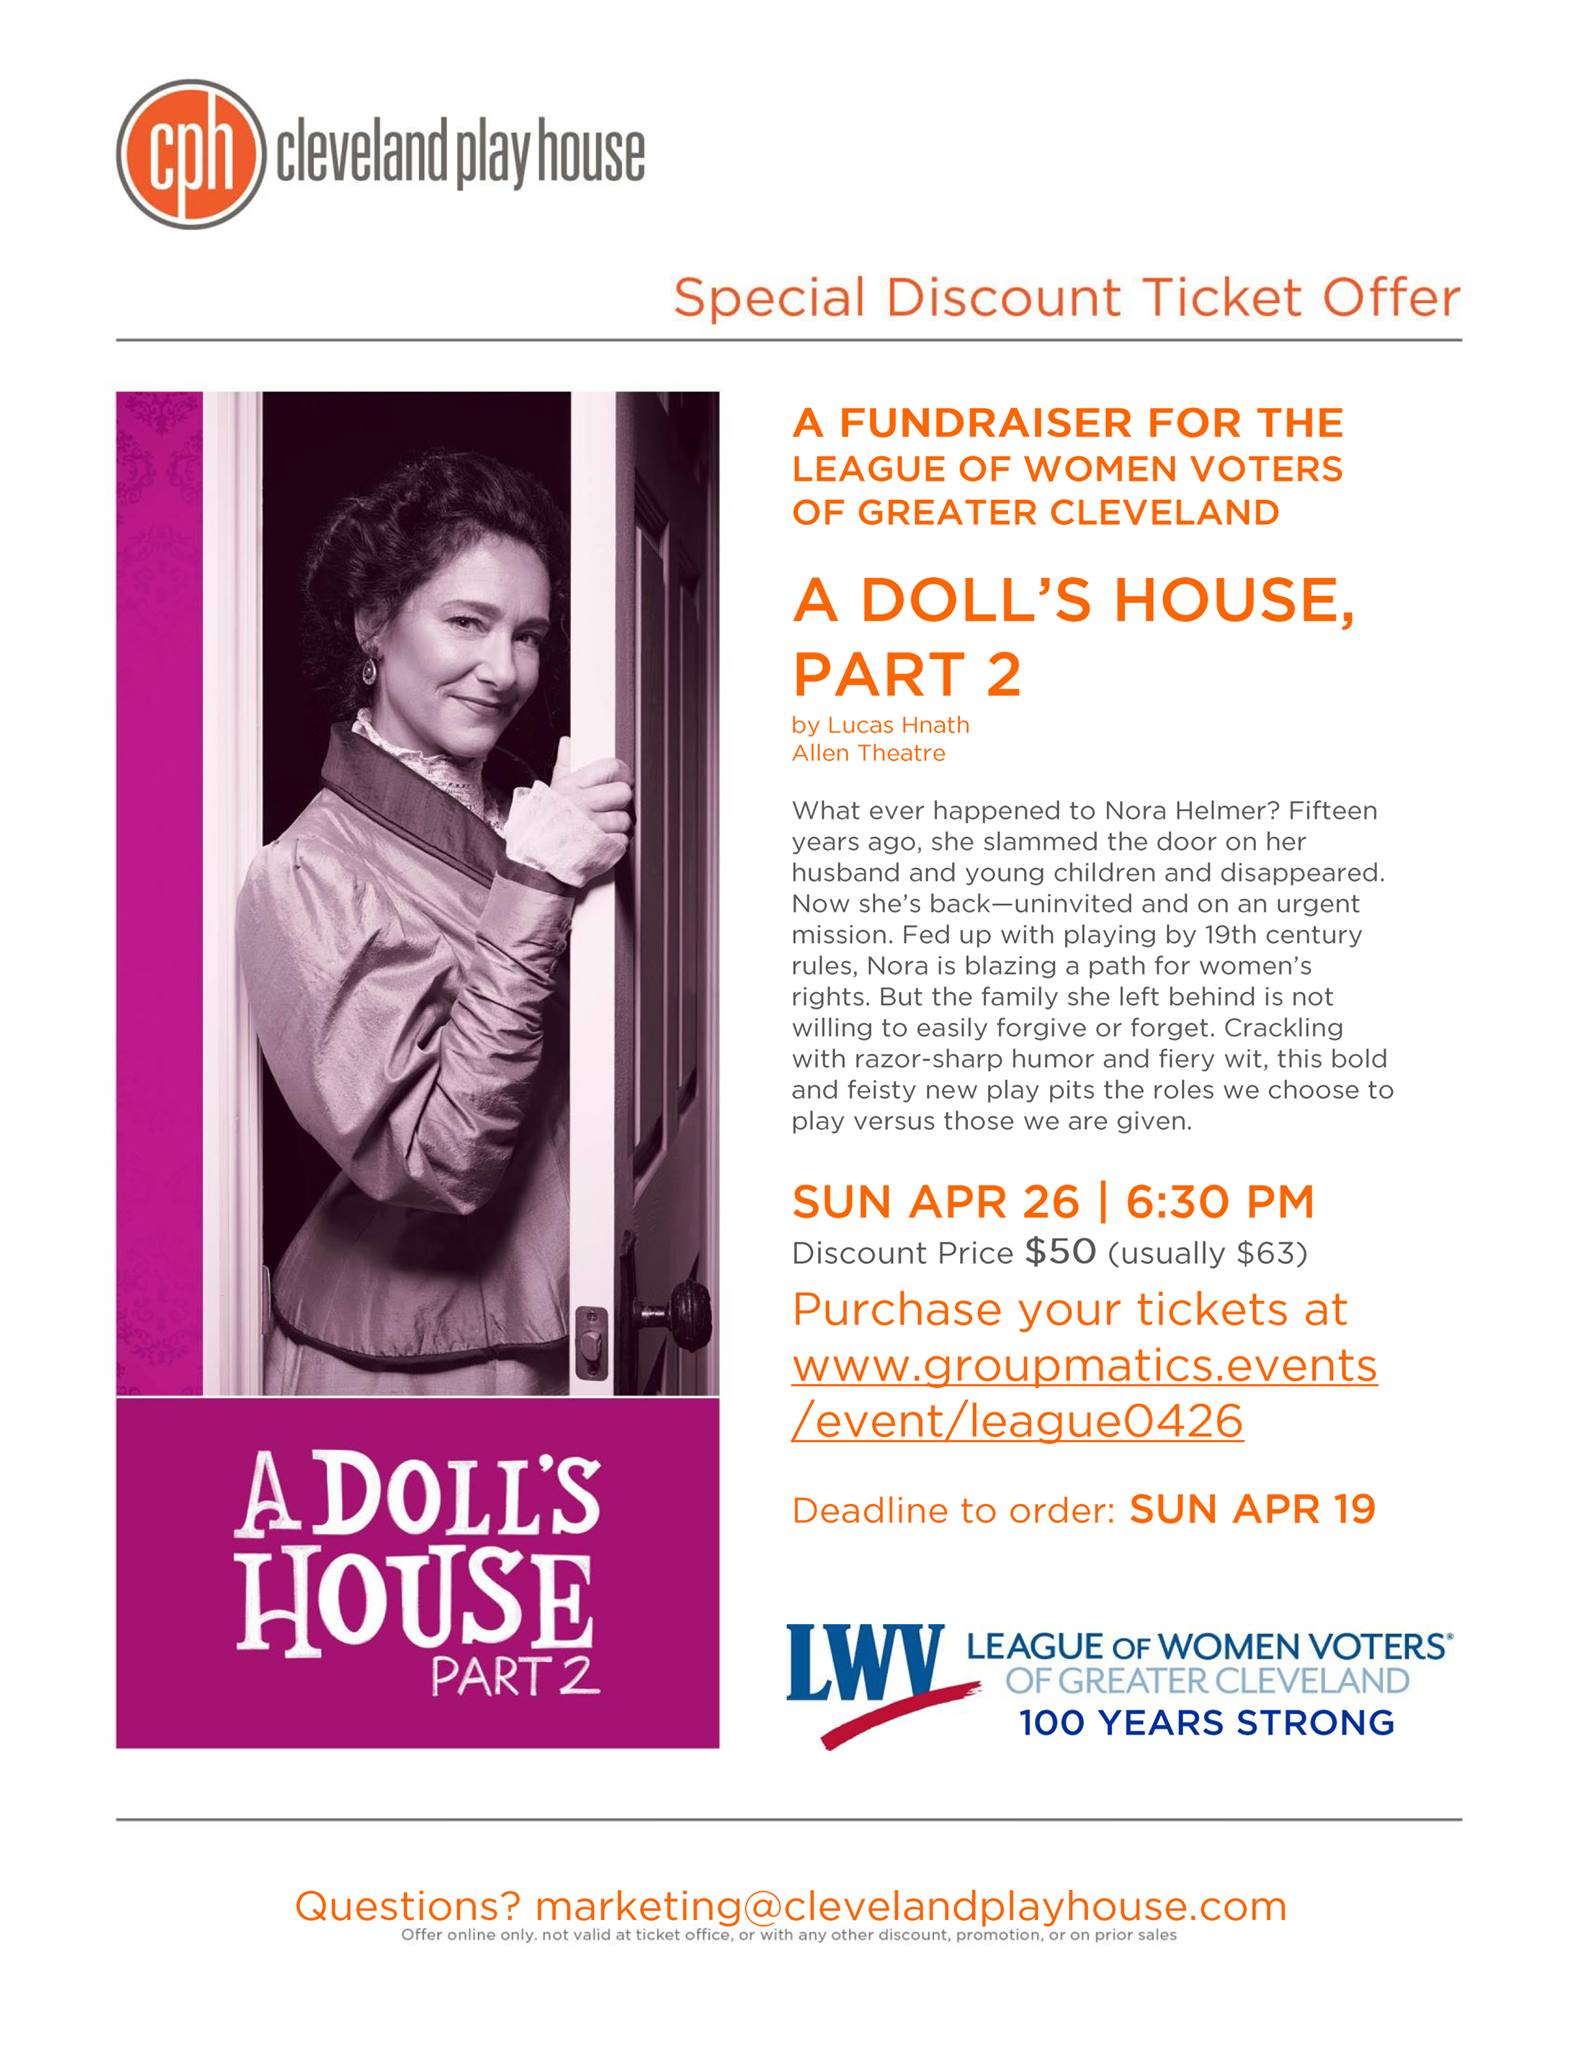 A Doll's House Part 2: A Fundraiser for the League of Women Voters of Greater Cleveland